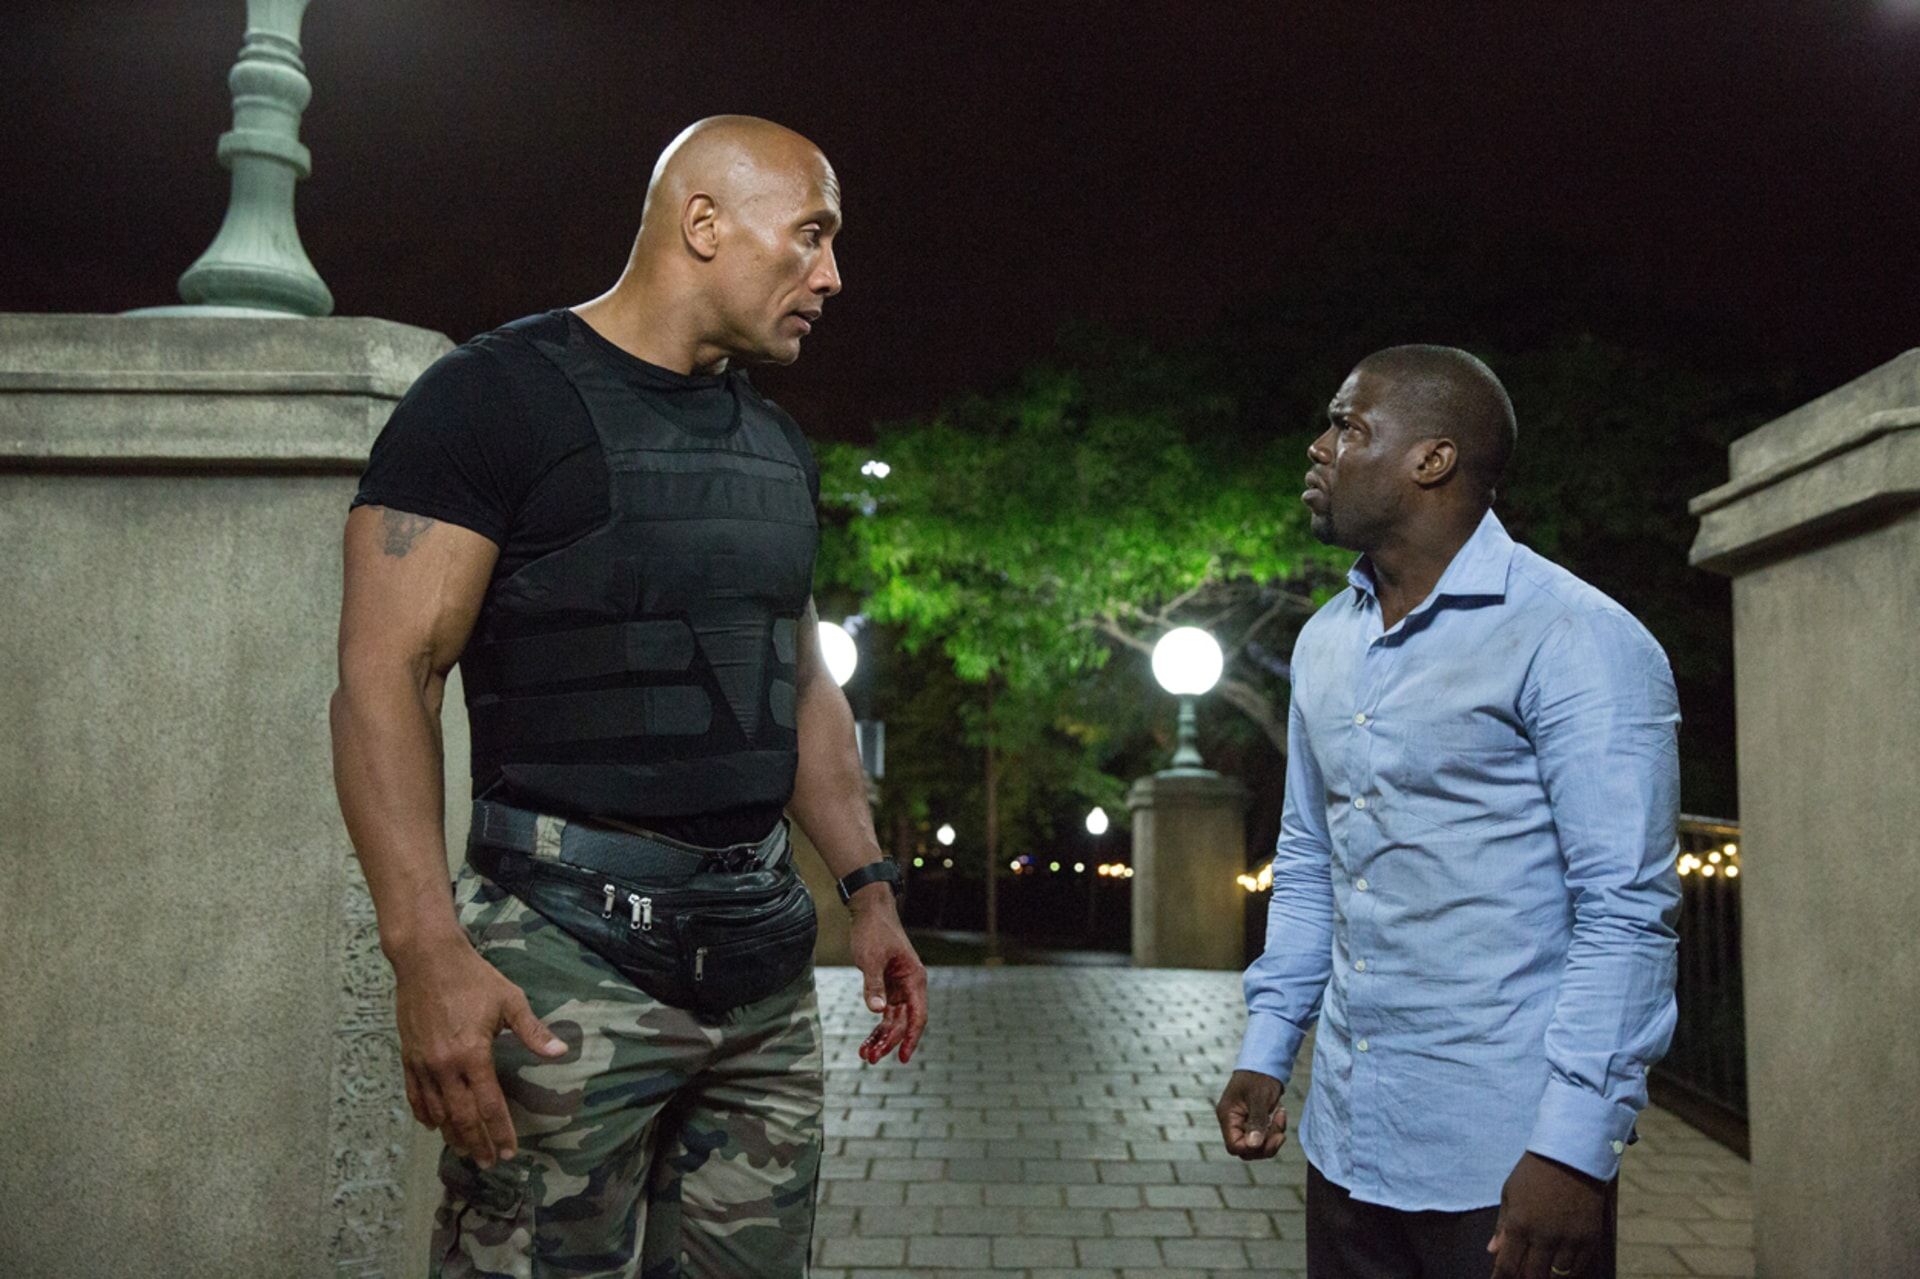 DWAYNE JOHNSON as Bob and KEVIN HART as Calvin standing on a bridge in a park at night